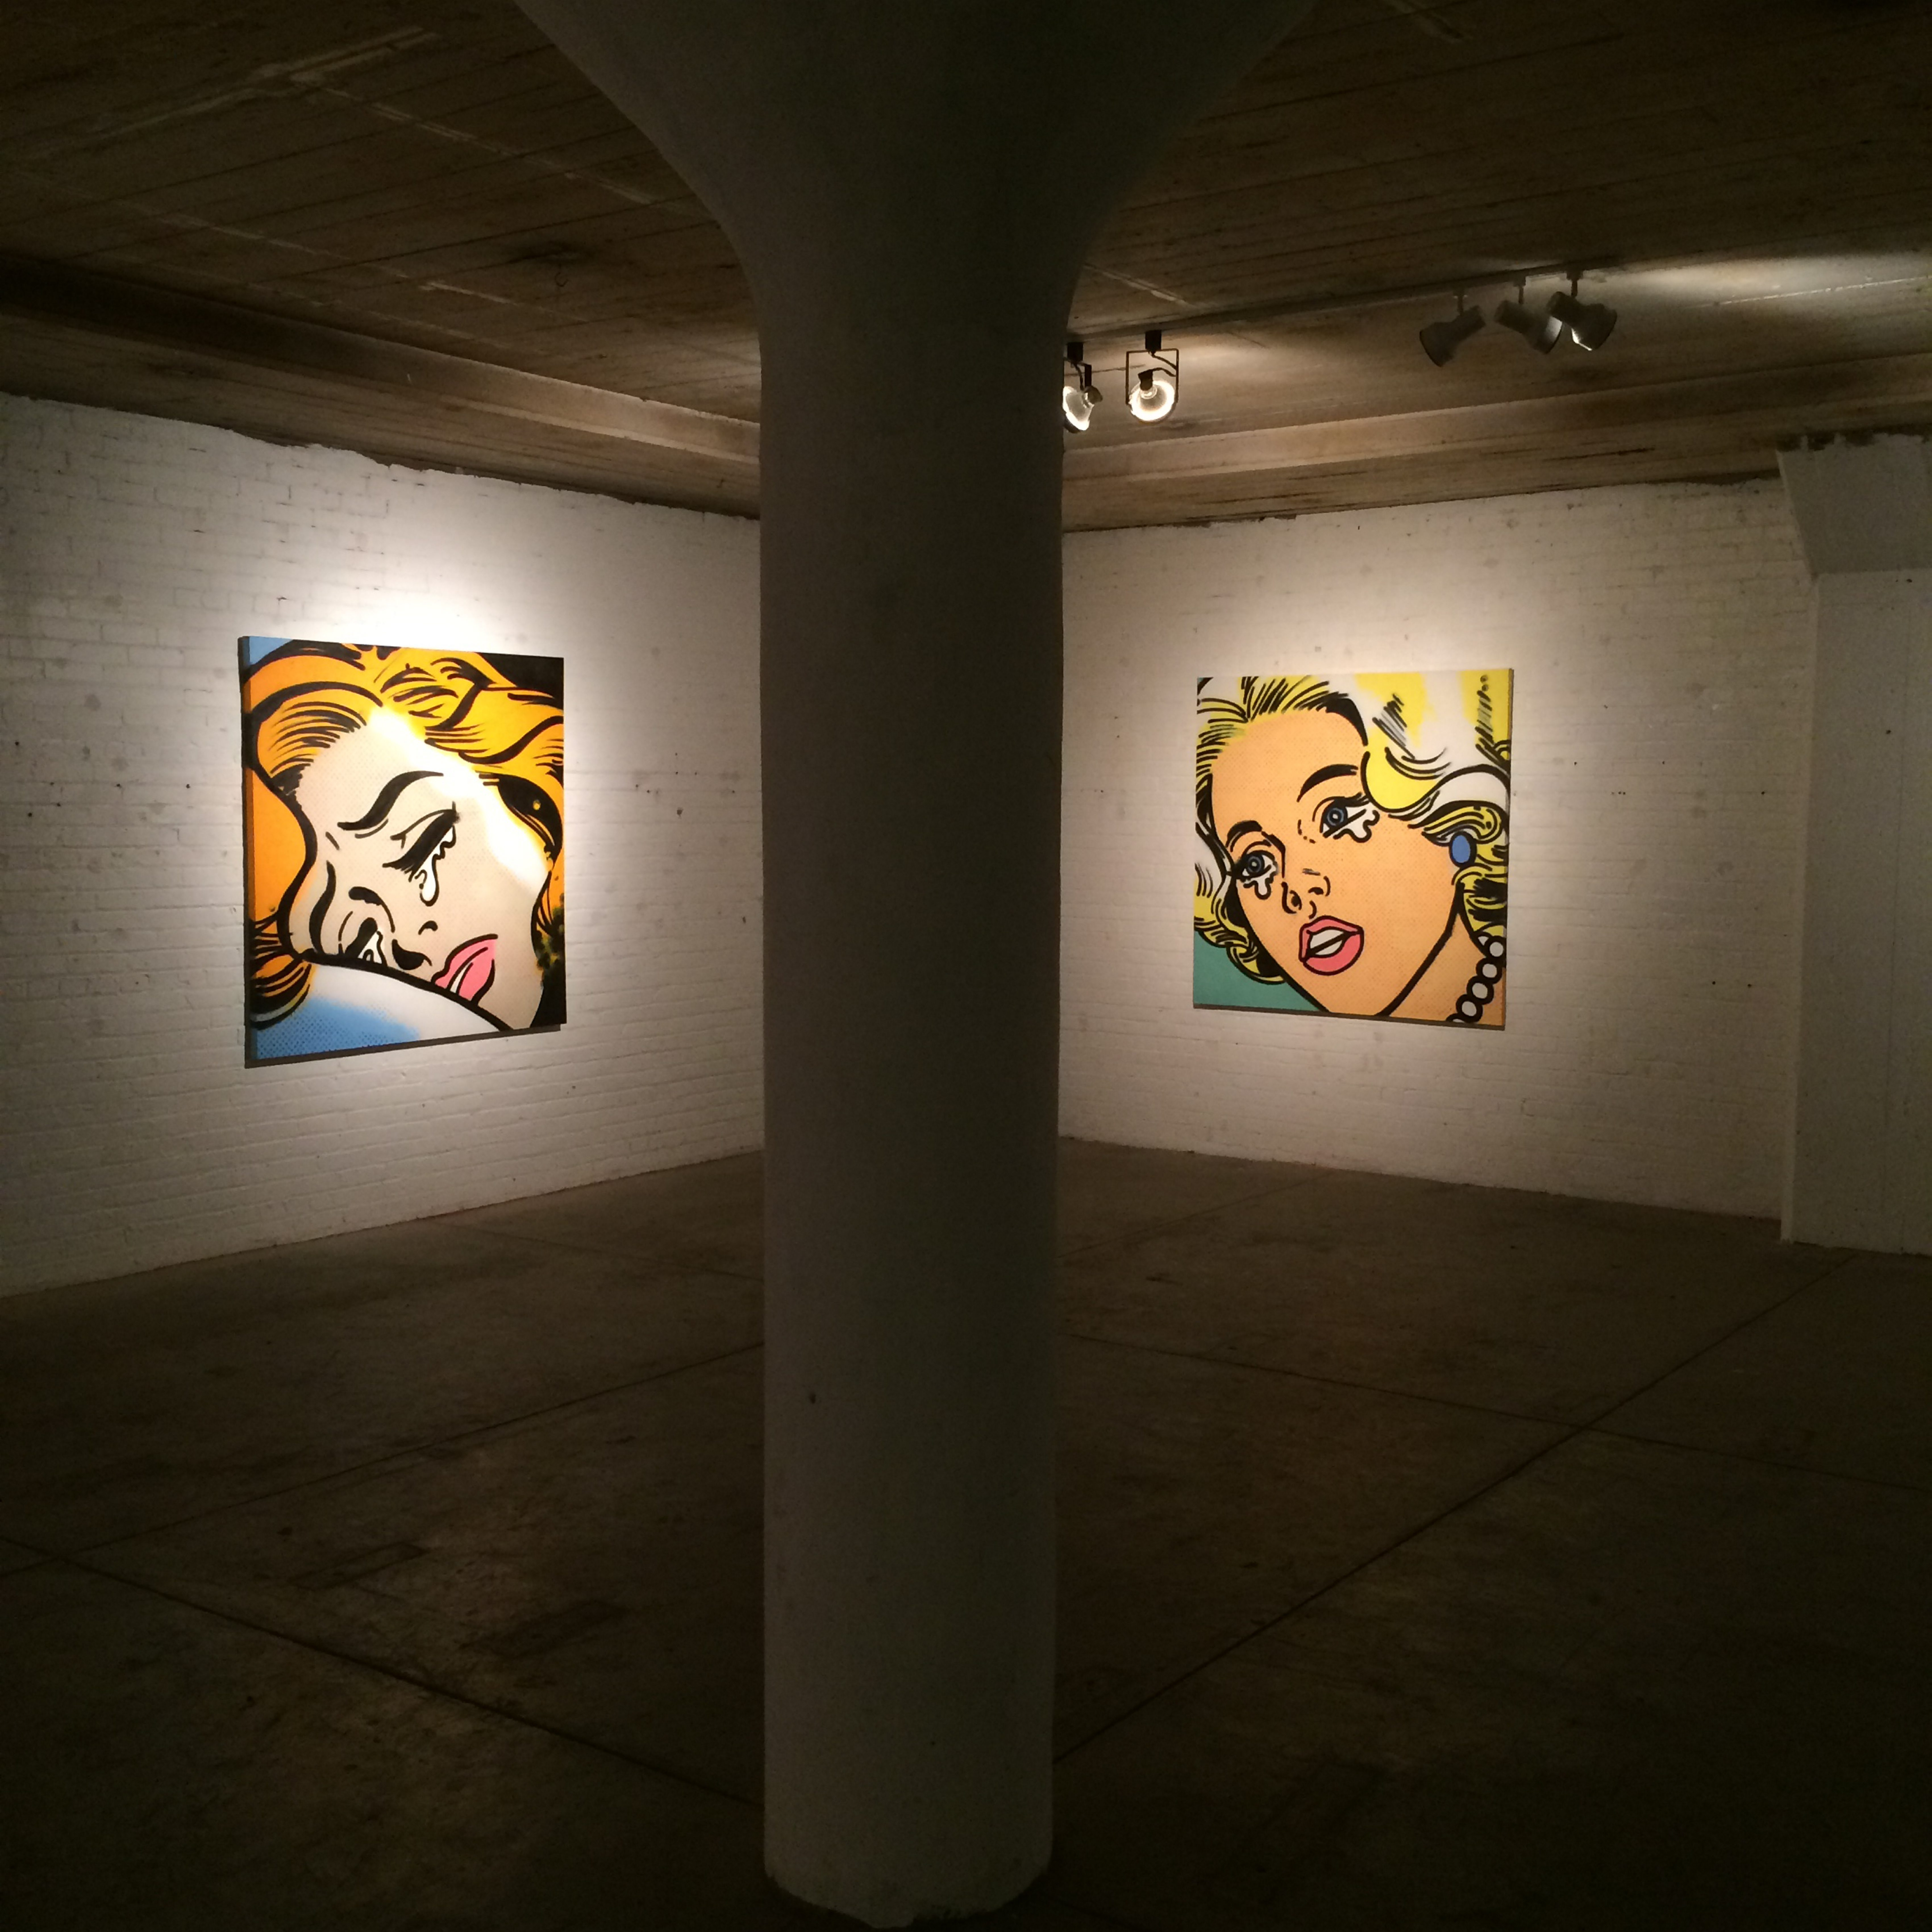 """Paintings by Athena Page hang in Hi-Temp Fabrication through June 27 as part of her """"Sad Girls"""" exhibition."""